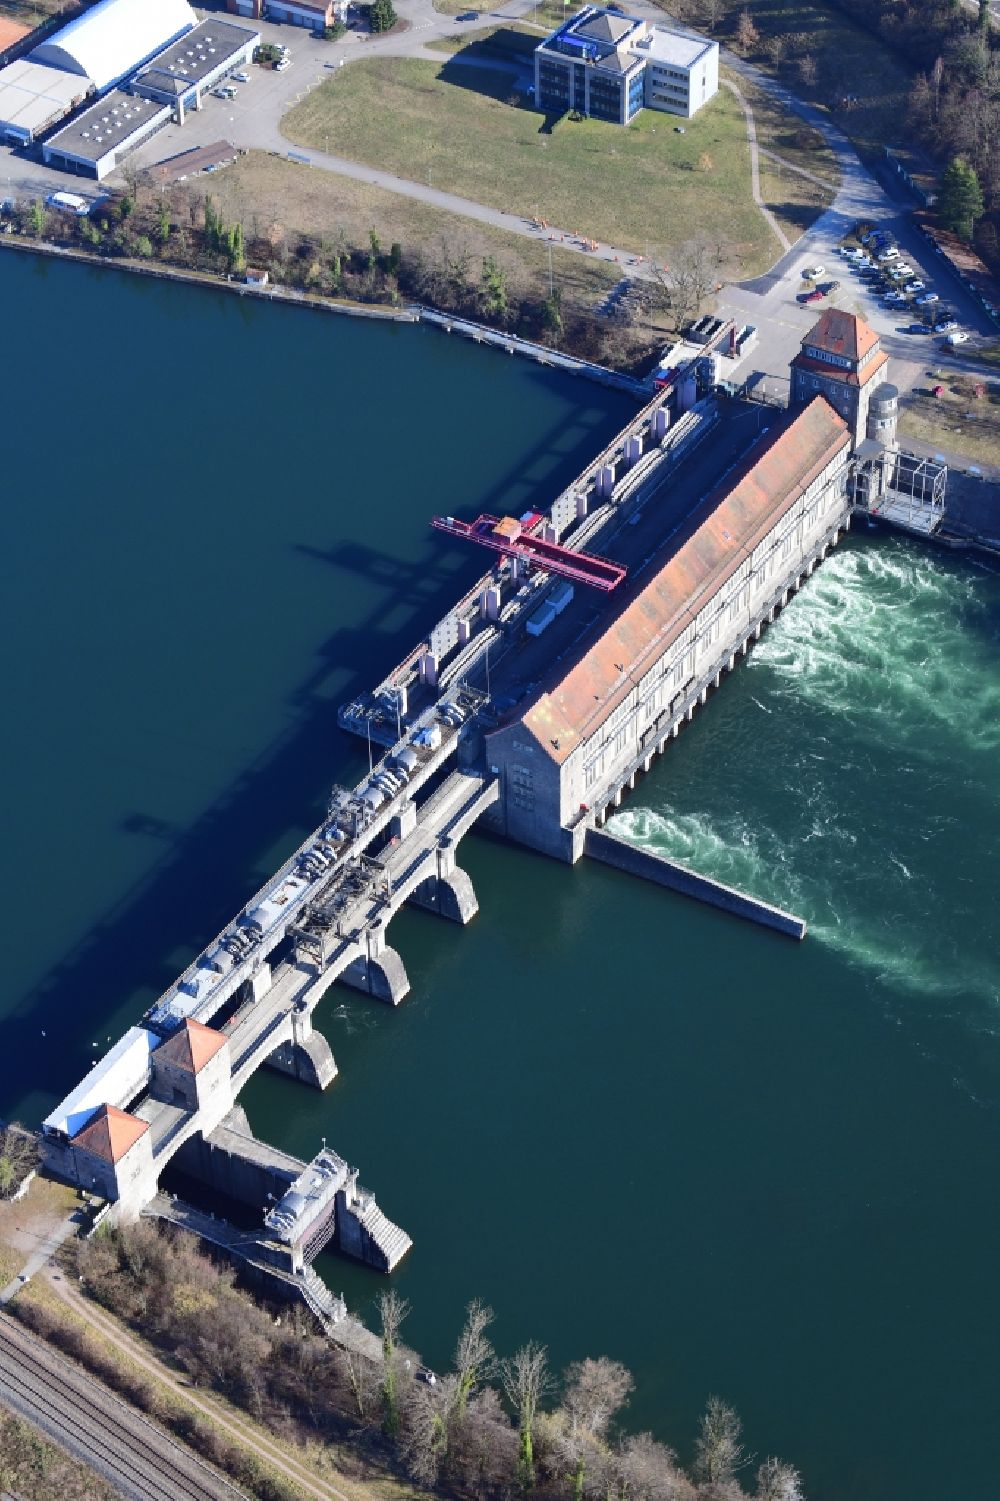 Laufenburg from the bird's eye view: Dam of the hydroelectric power plant of Energiedienst Holding AG at the river Rhine in Laufenburg in the state Baden-Wurttemberg, Germany.